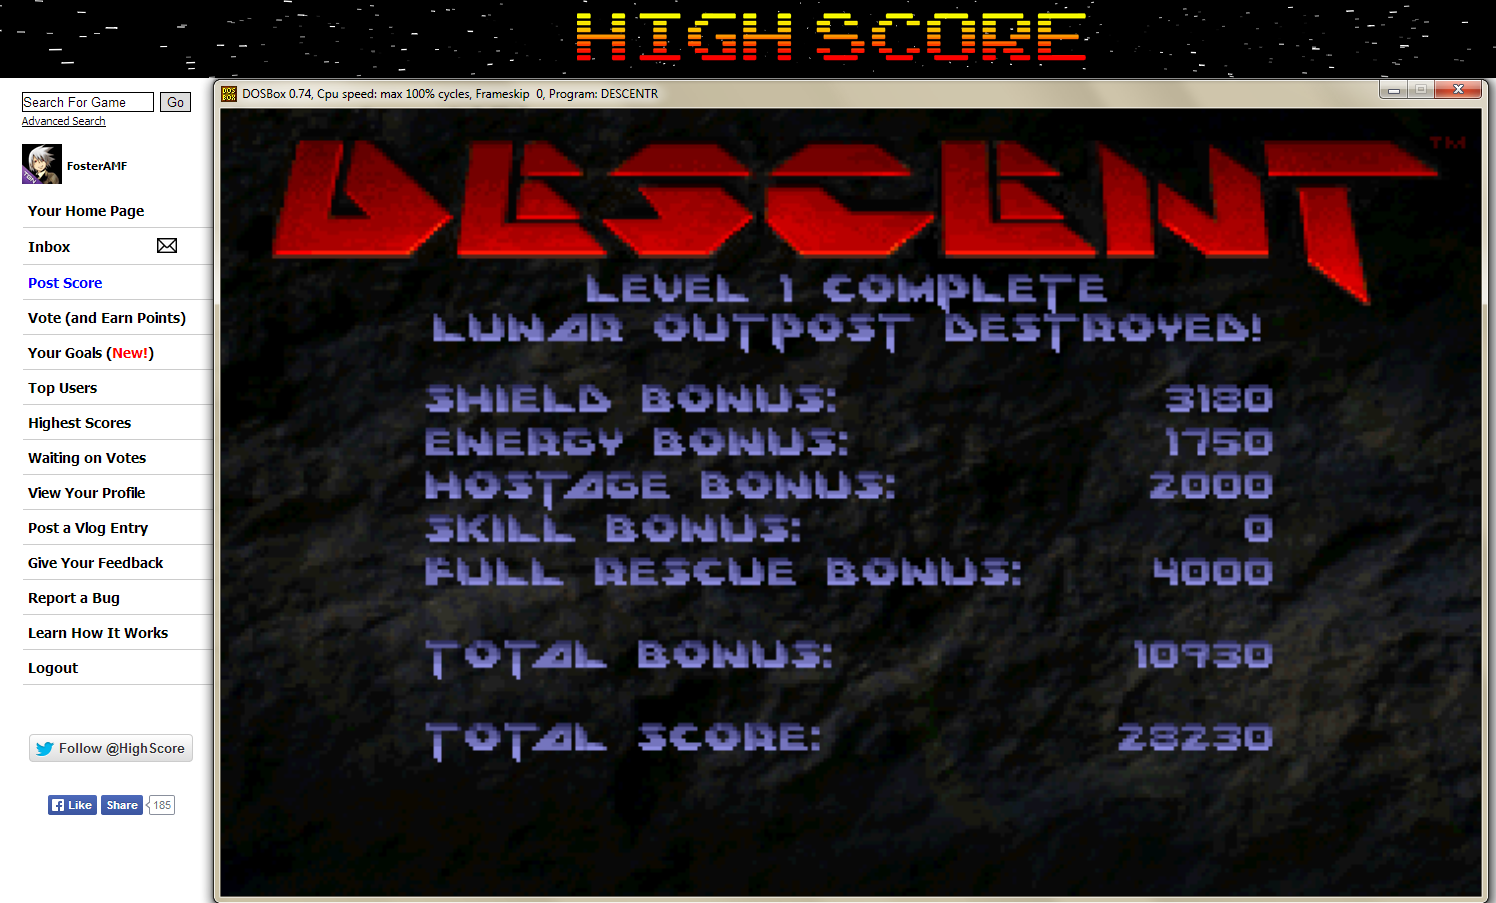 FosterAMF: Descent: Lunar Outpost [Rookie] (PC Emulated / DOSBox) 28,230 points on 2014-05-07 00:11:16